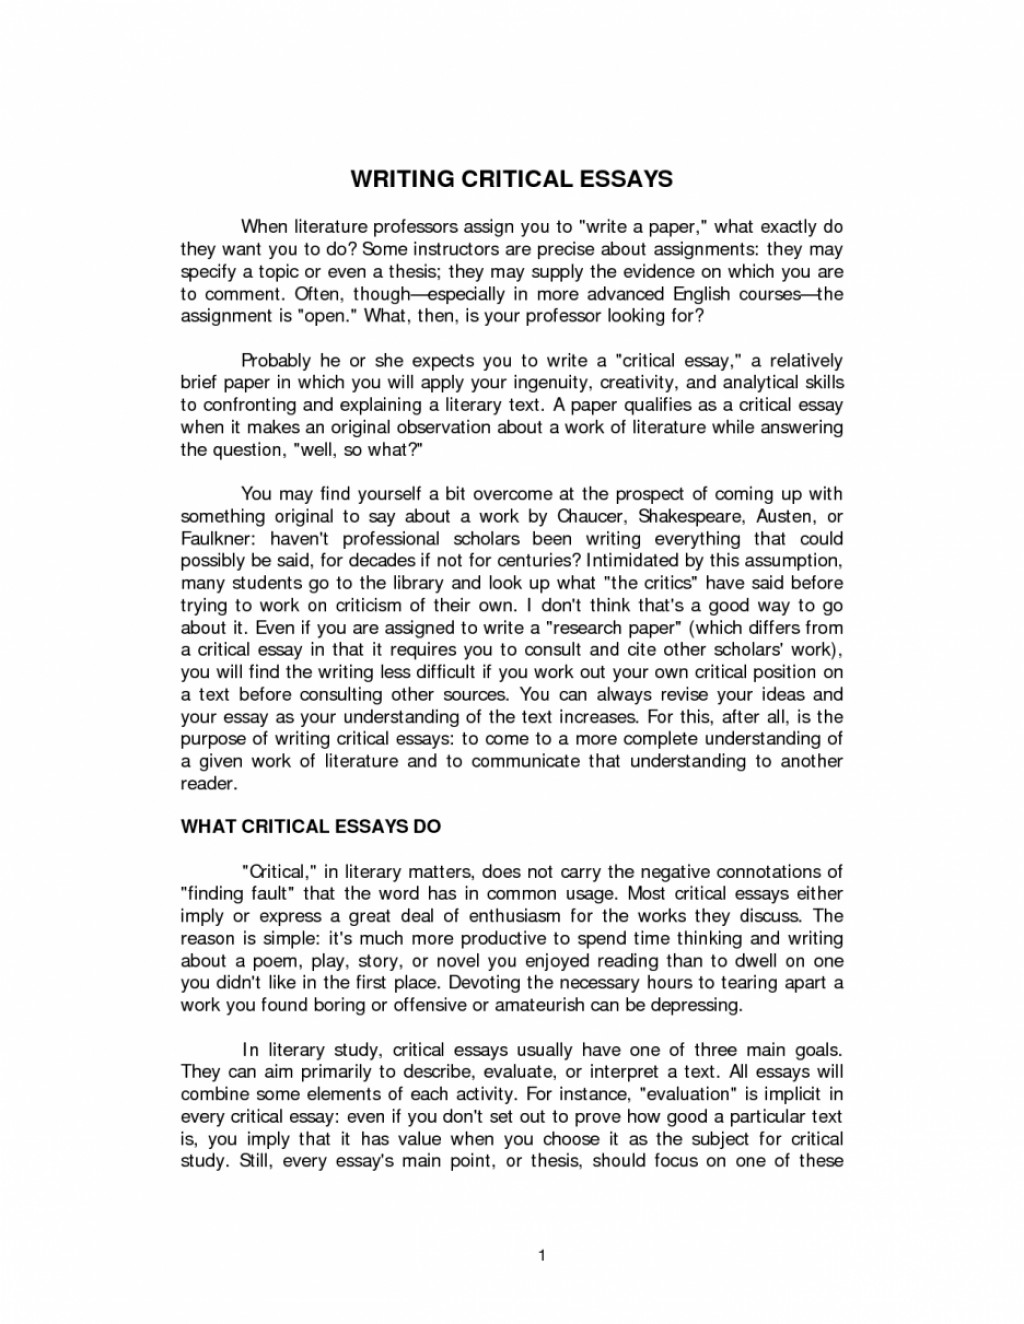 014 Help Writing Descriptive Essay Nxcpjzbtuh Example Of In Gonder About Person Examples For High School Discriptive Words Place Pdf Love The Beach An Event Nature My Mother Amazing Essays 5 Paragraphs Sample A Large